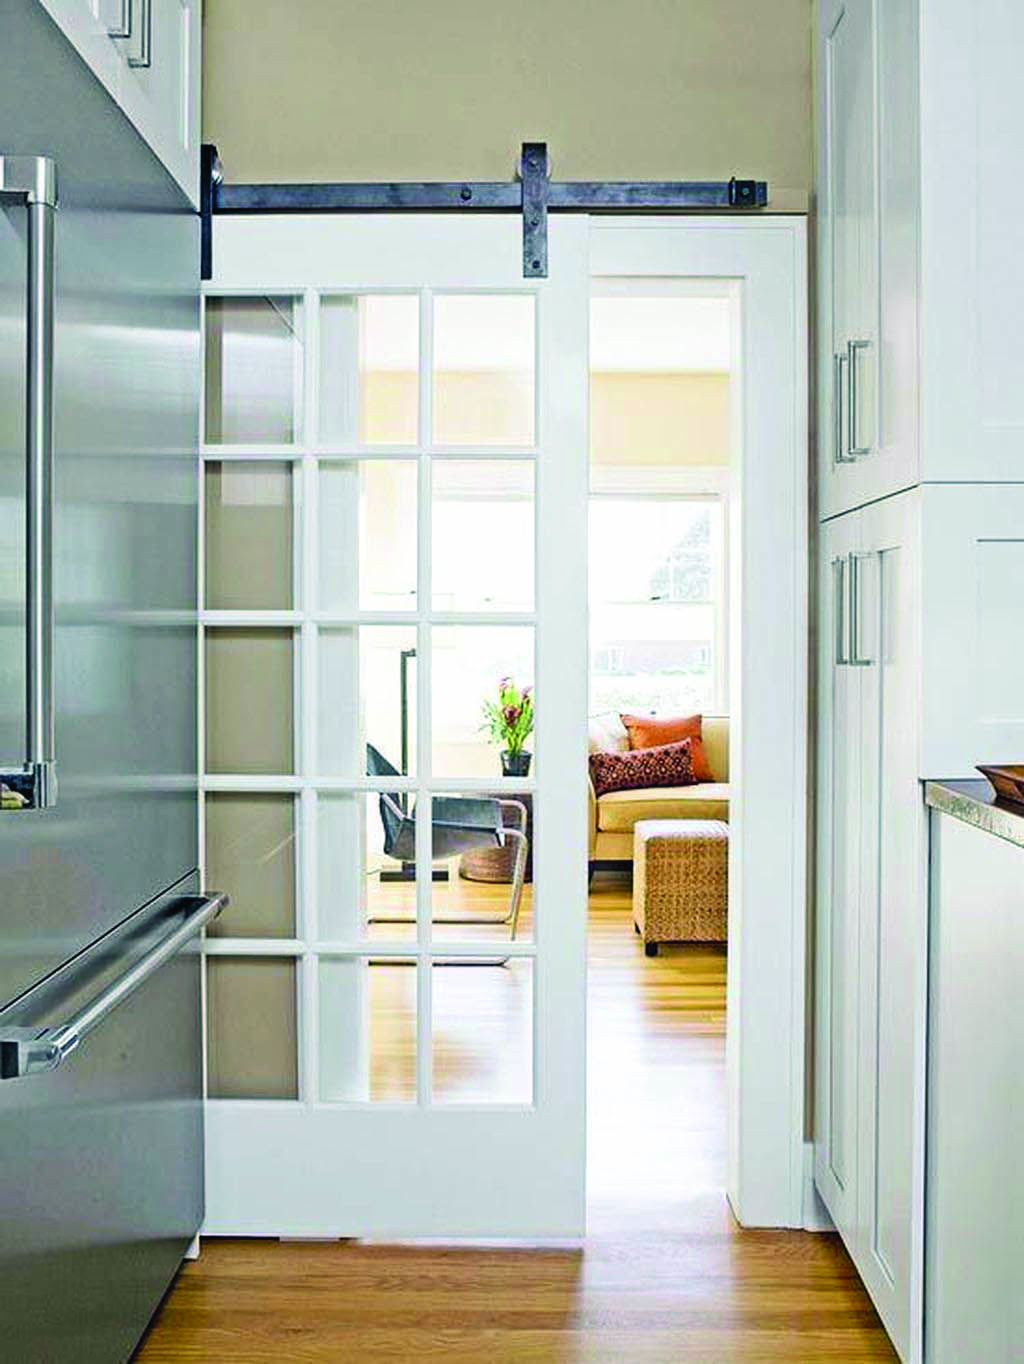 Moving Door Styles For Bedroom With Images Barn Style Doors